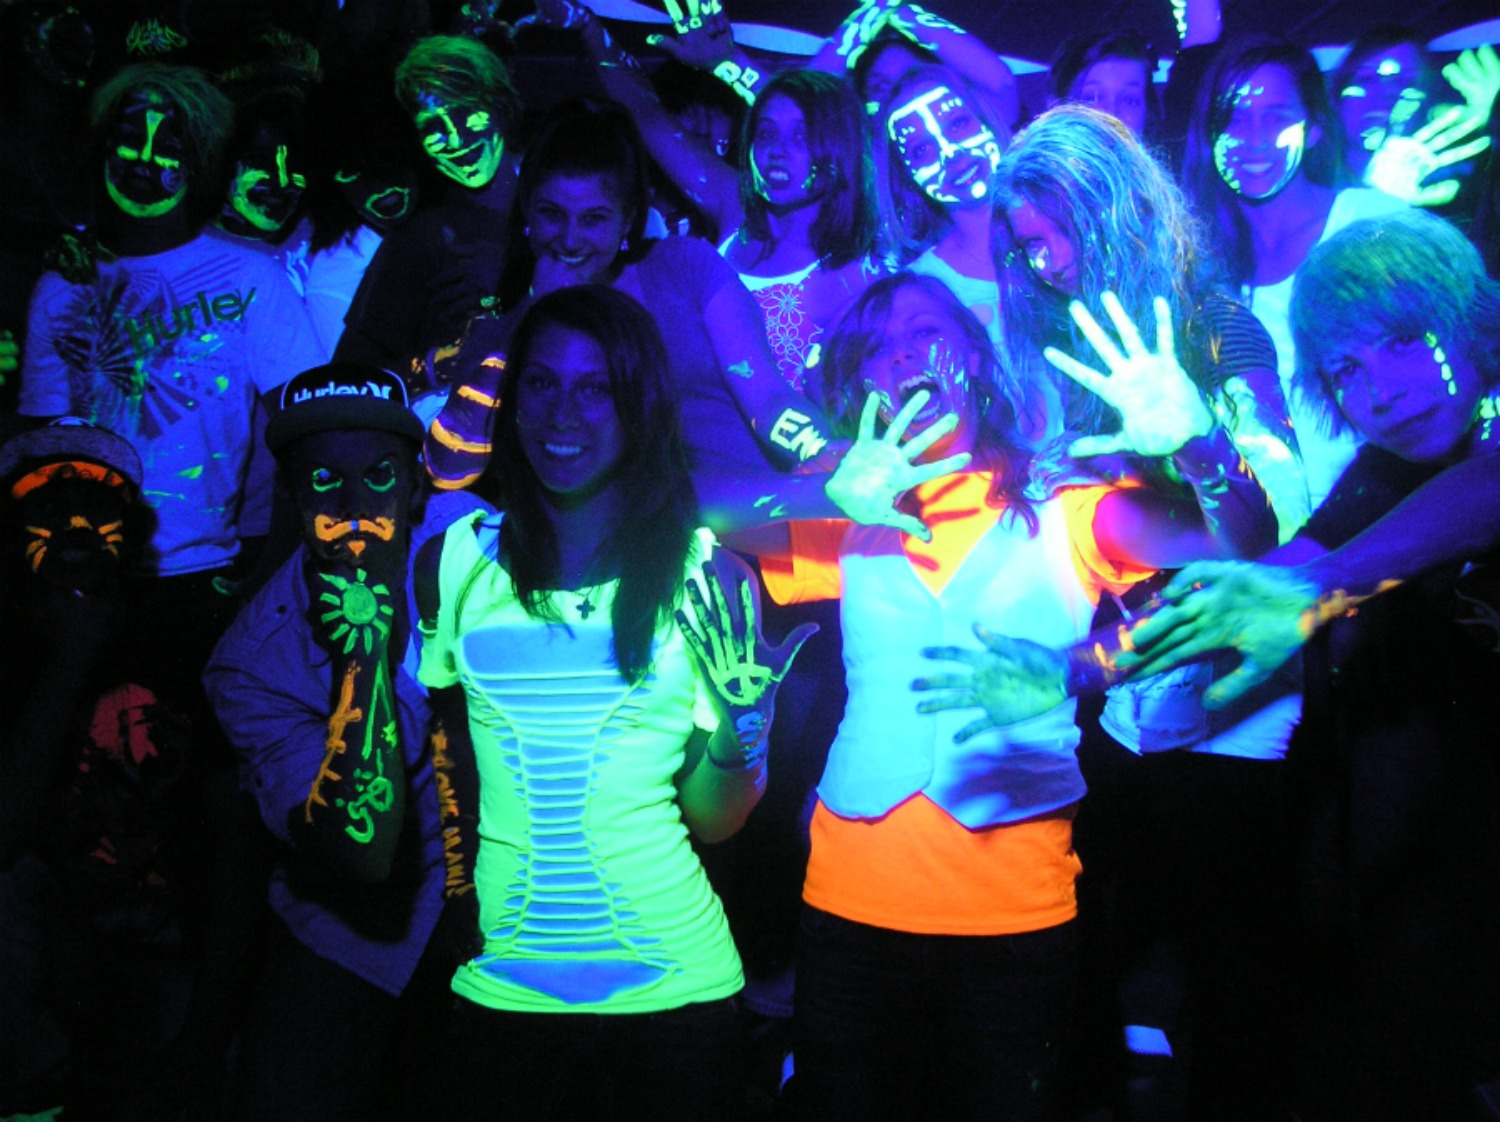 Black Light Party Outfit Ideas - Outfit Ideas HQ